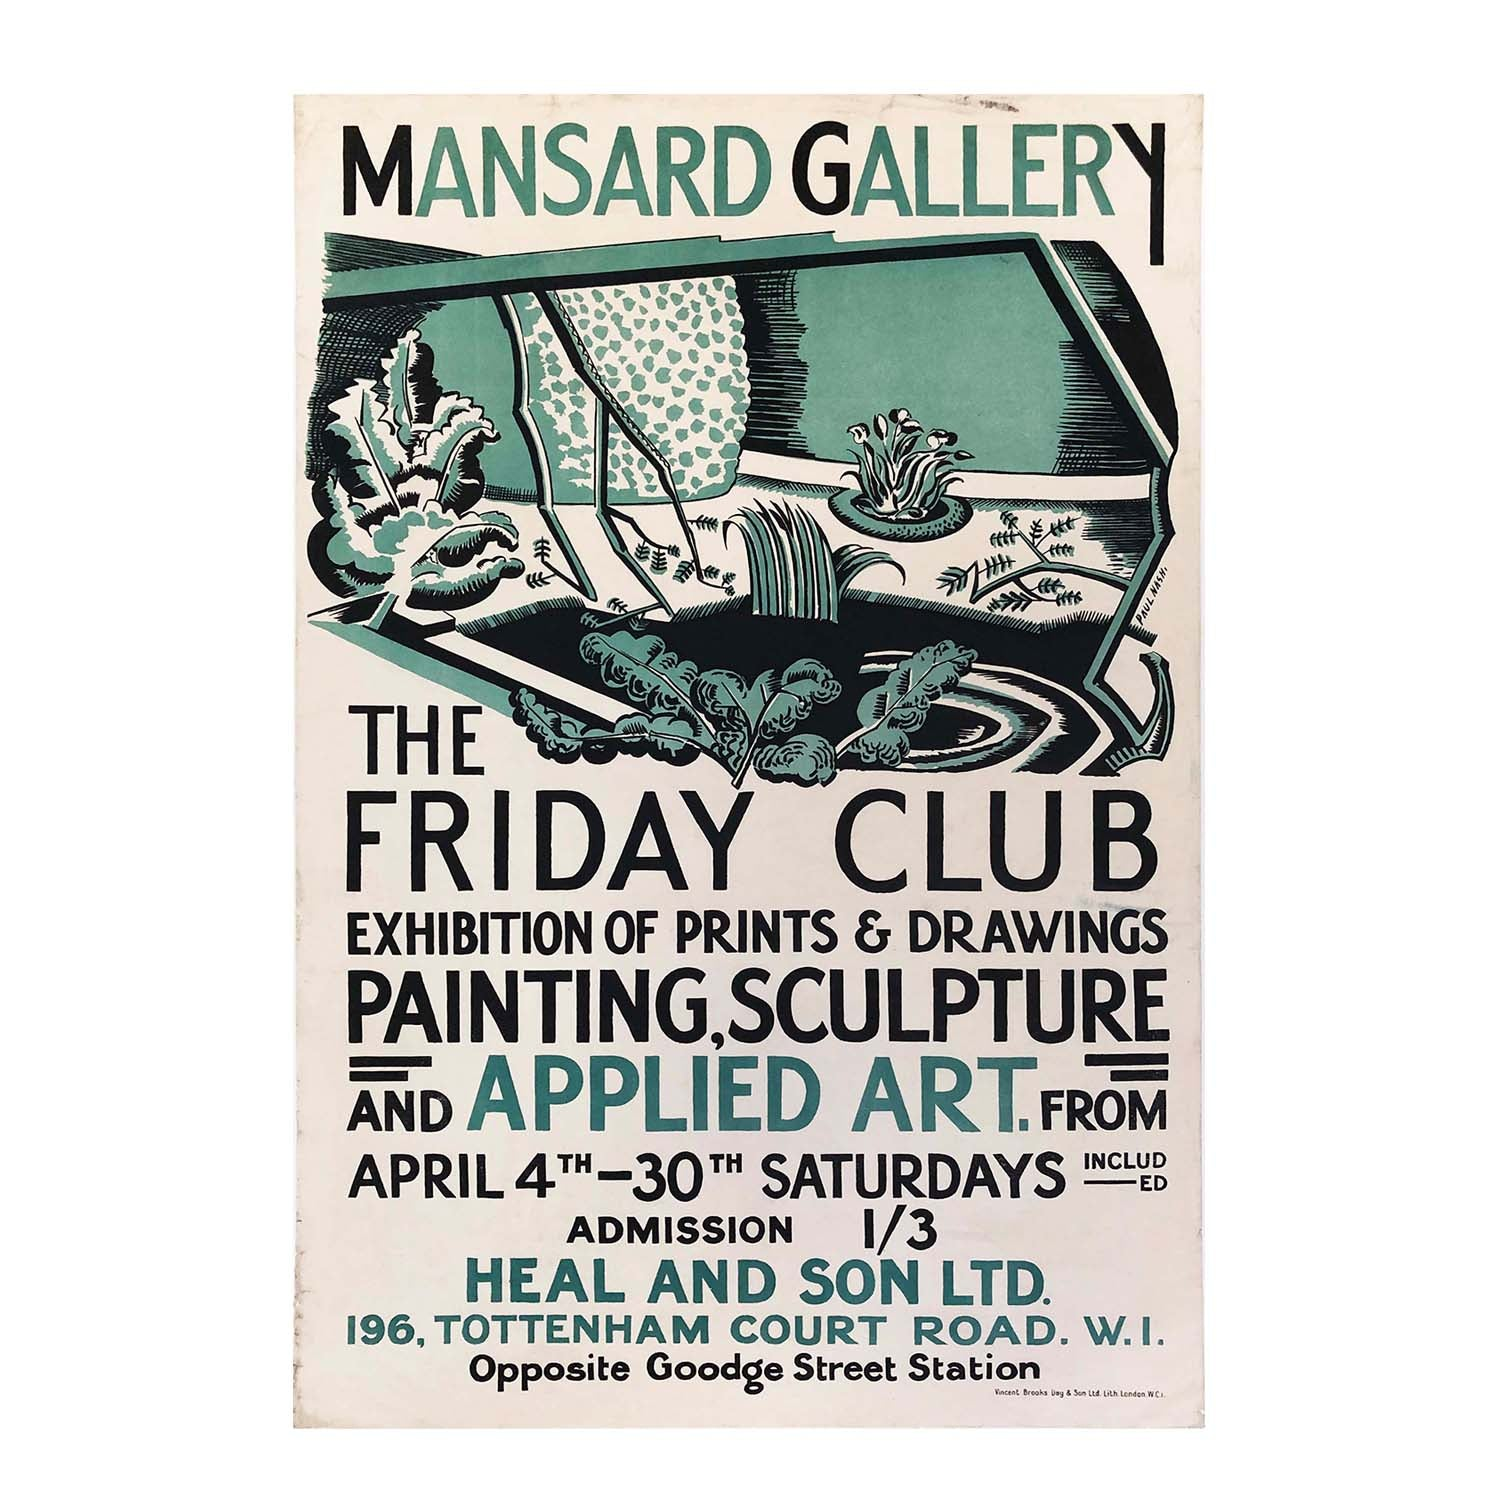 An important, and rare, exhibition poster for the Friday Club designed by the British surrealist painter and war artist, Paul Nash